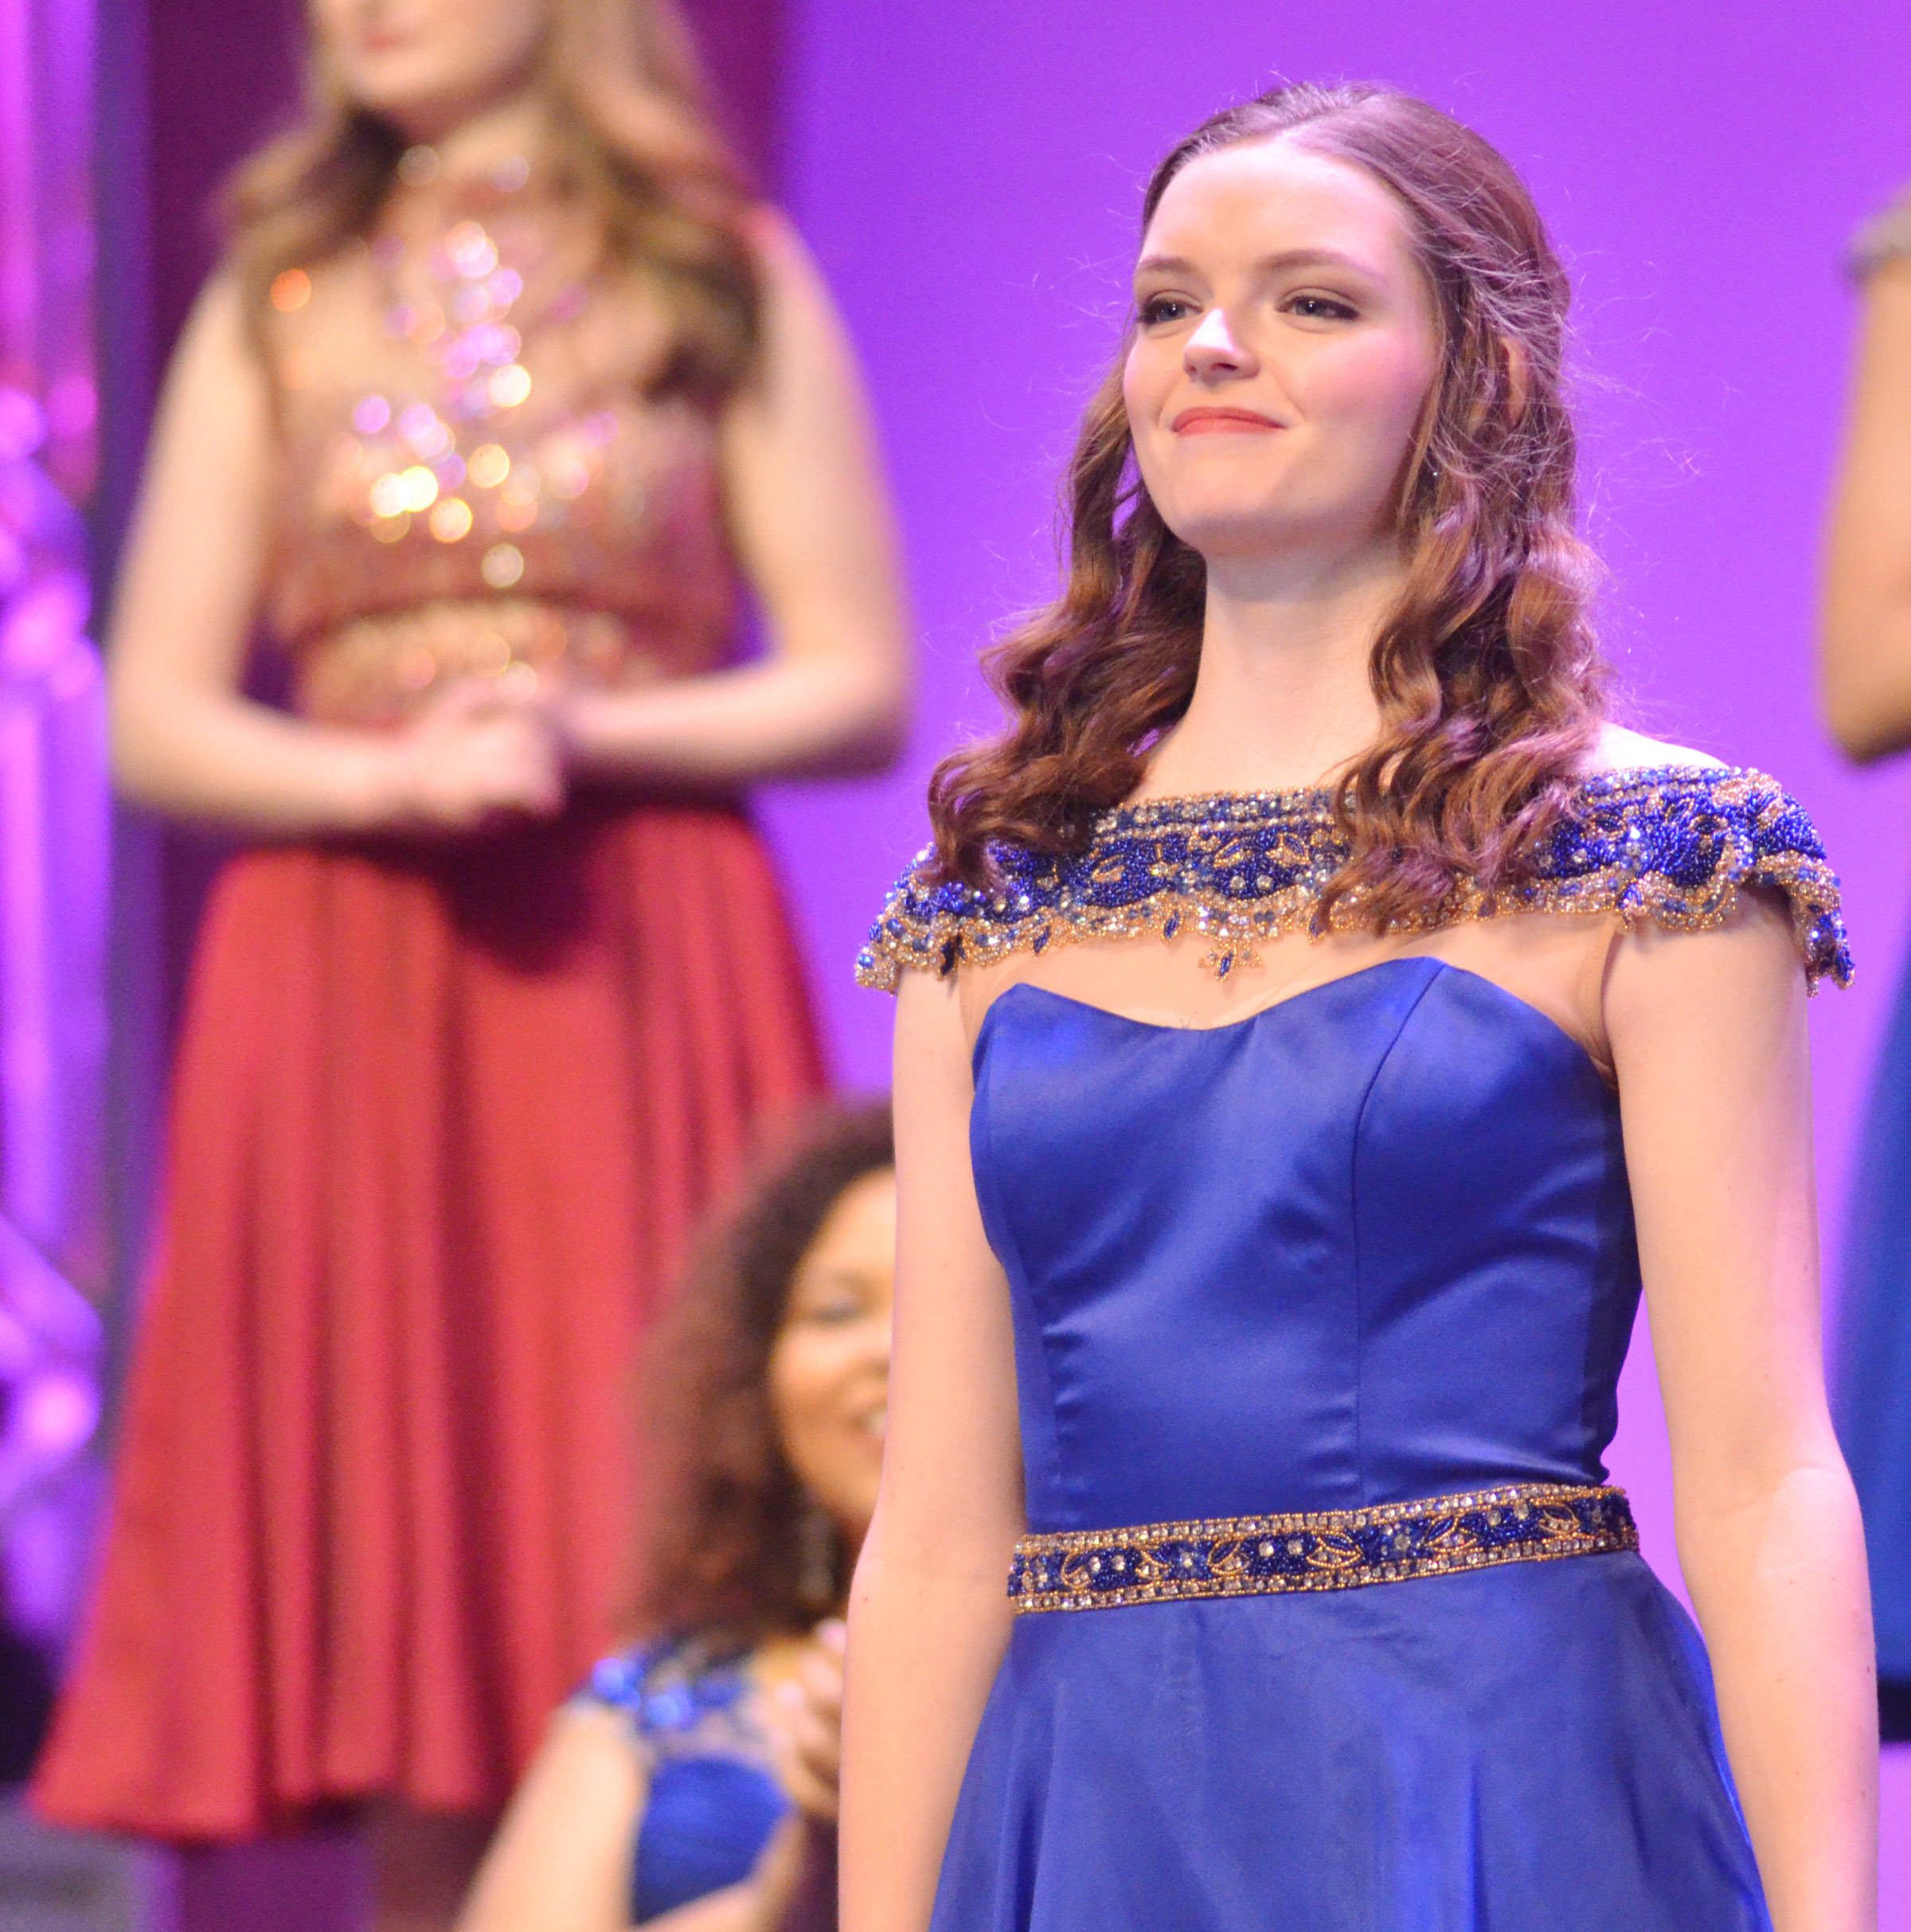 CHS senior Blair Lamb is named fourth runner-up in the state DYW program.